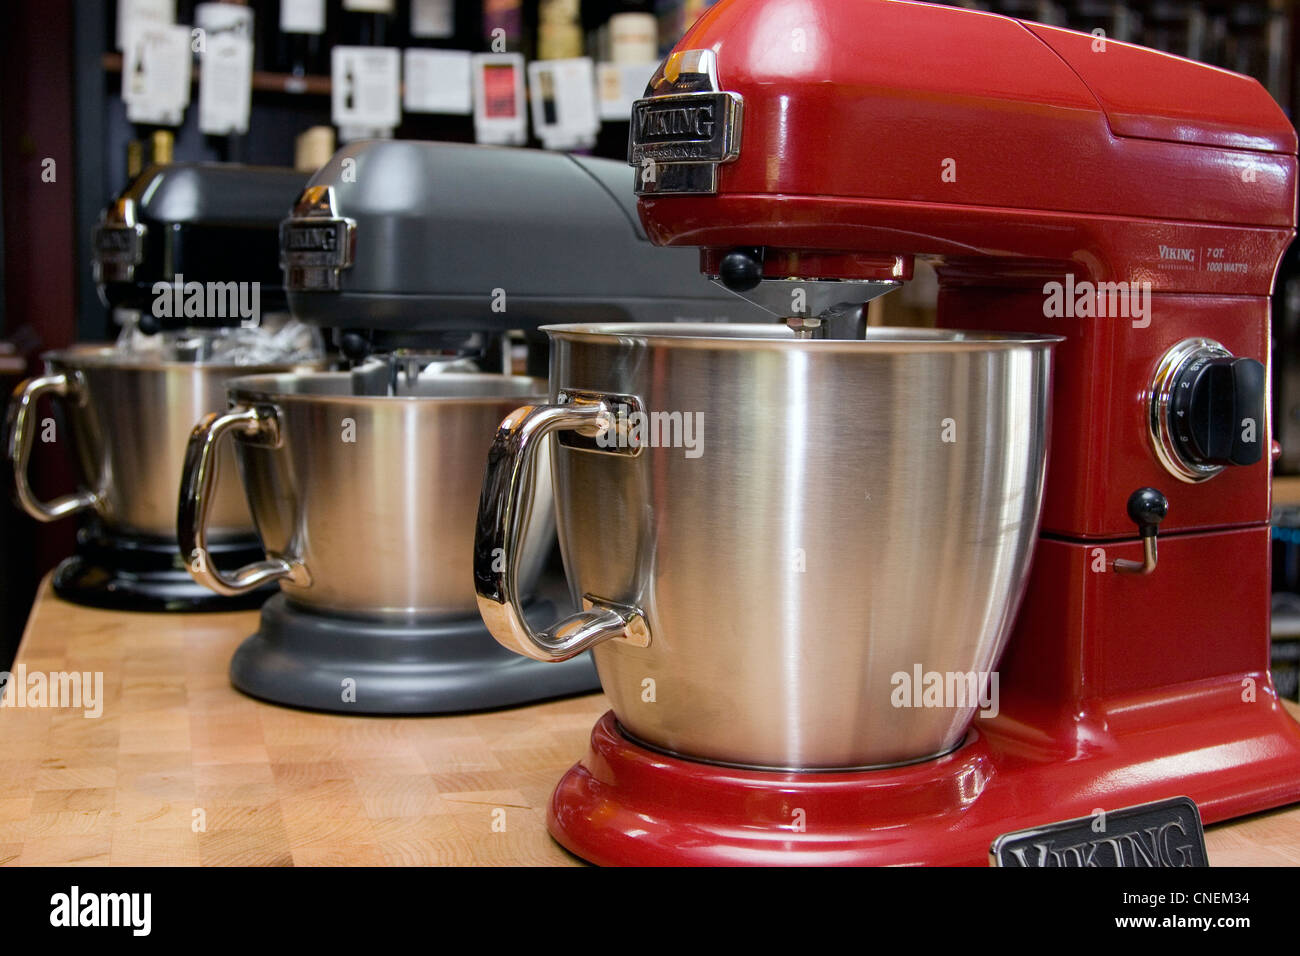 Viking electric mixers in store, electric kitchen appliance - Stock Image